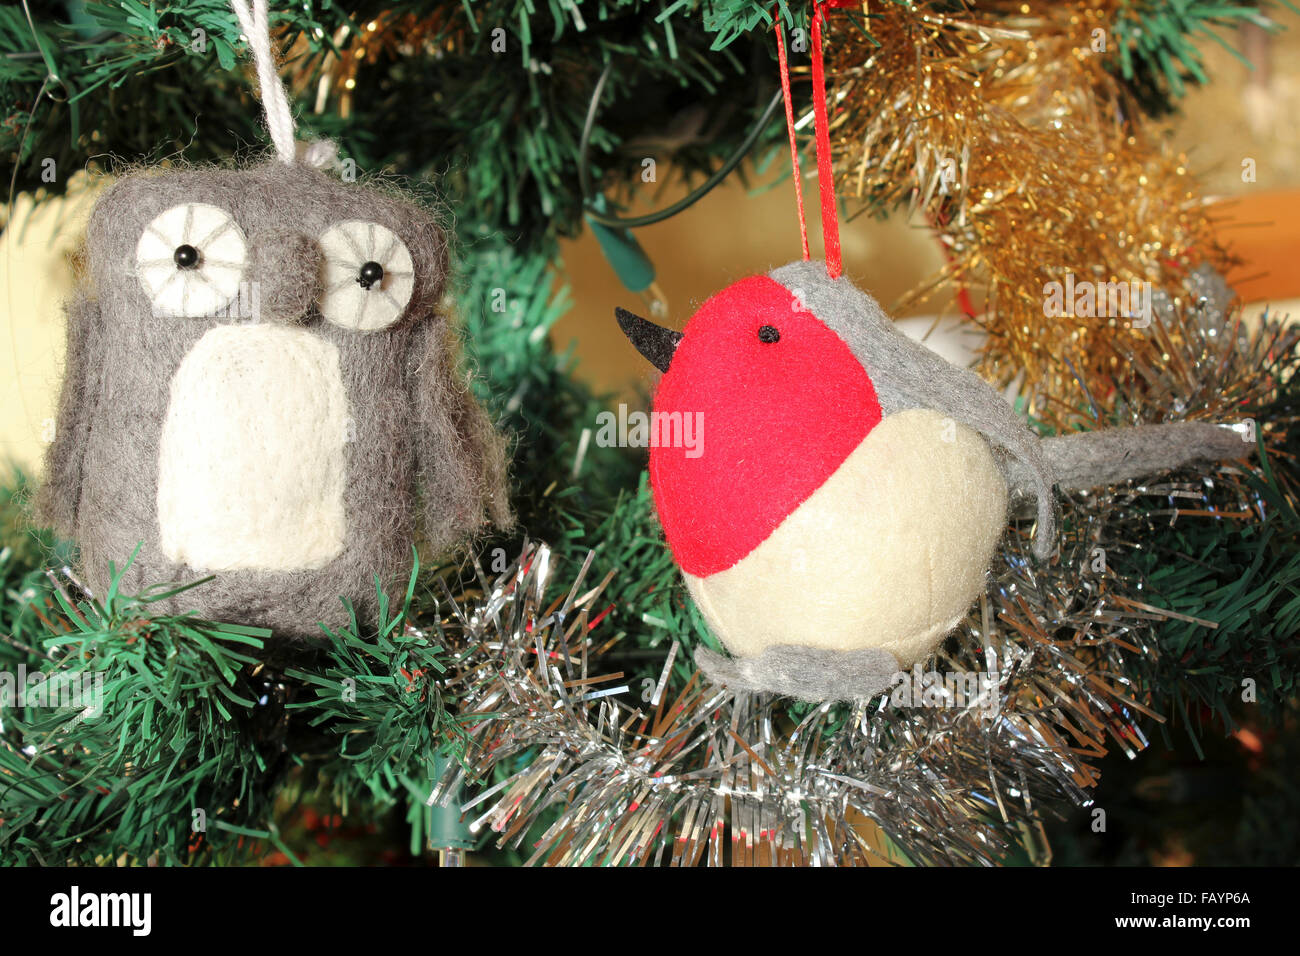 Owl And Robin Christmas Decorations - Stock Image